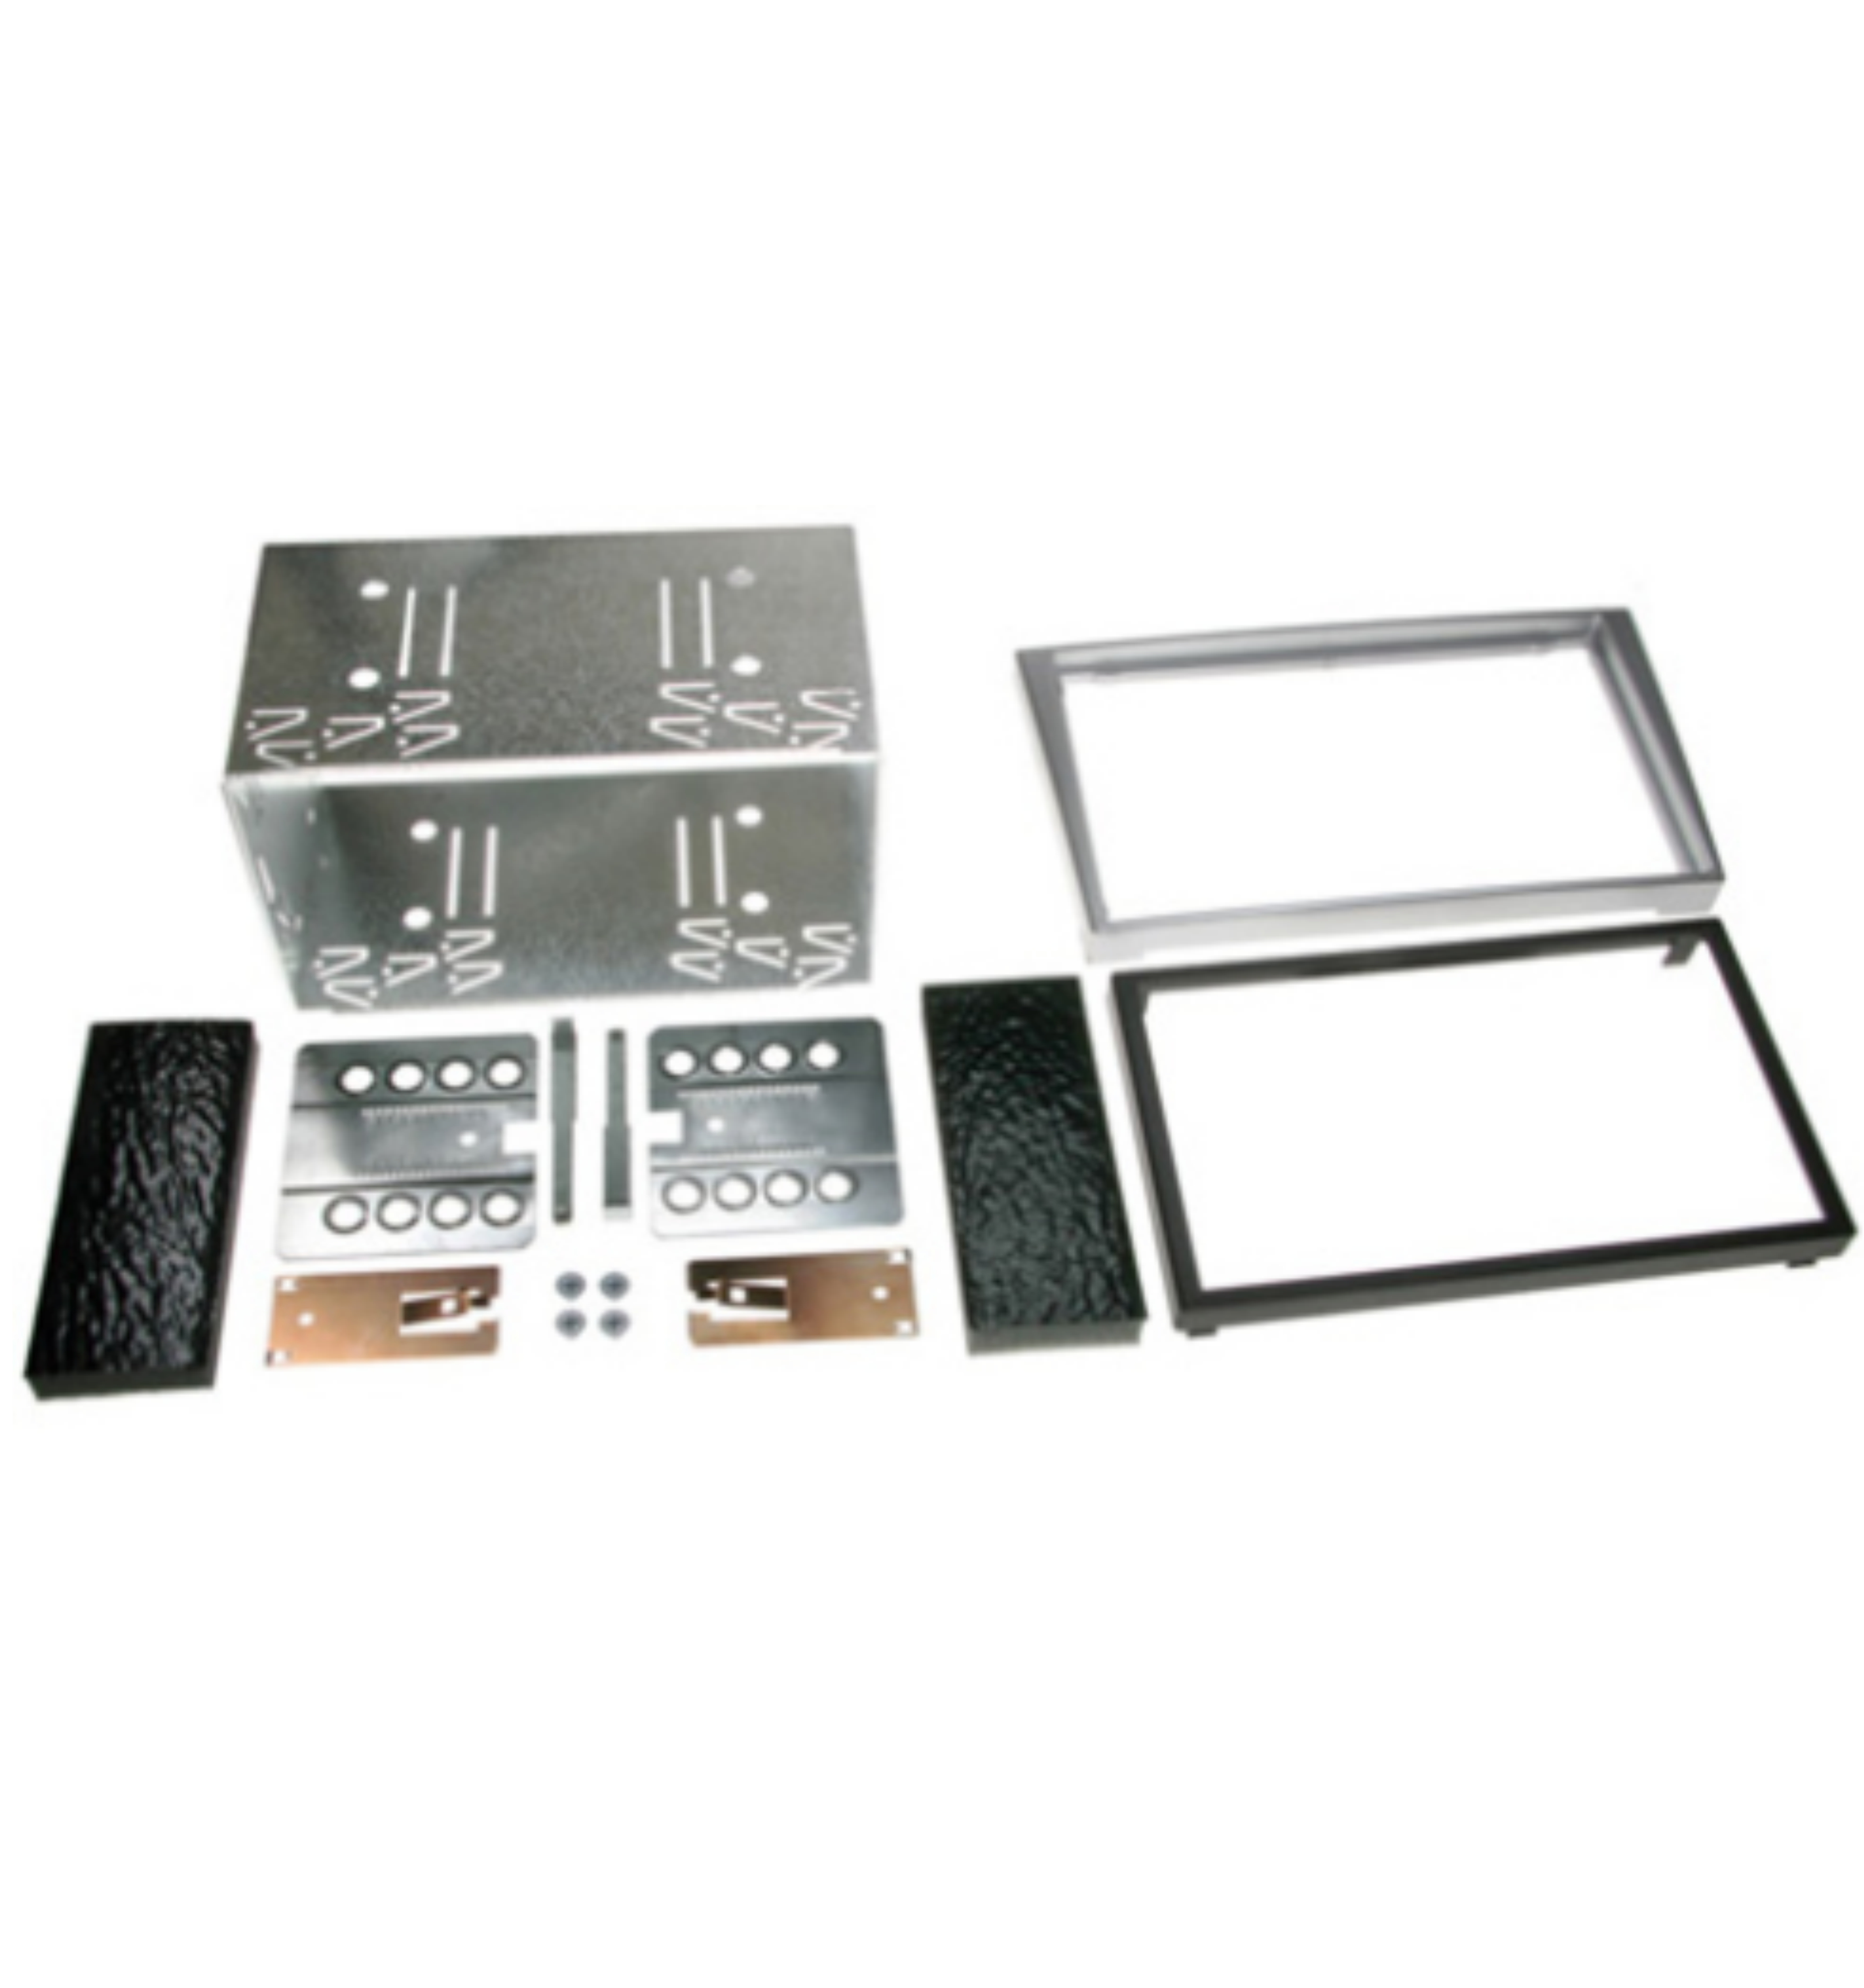 C2 23VX12 Car Stereo Double Din Fascia Plate Adaptor  Vauxhall Signum/Vectra 200